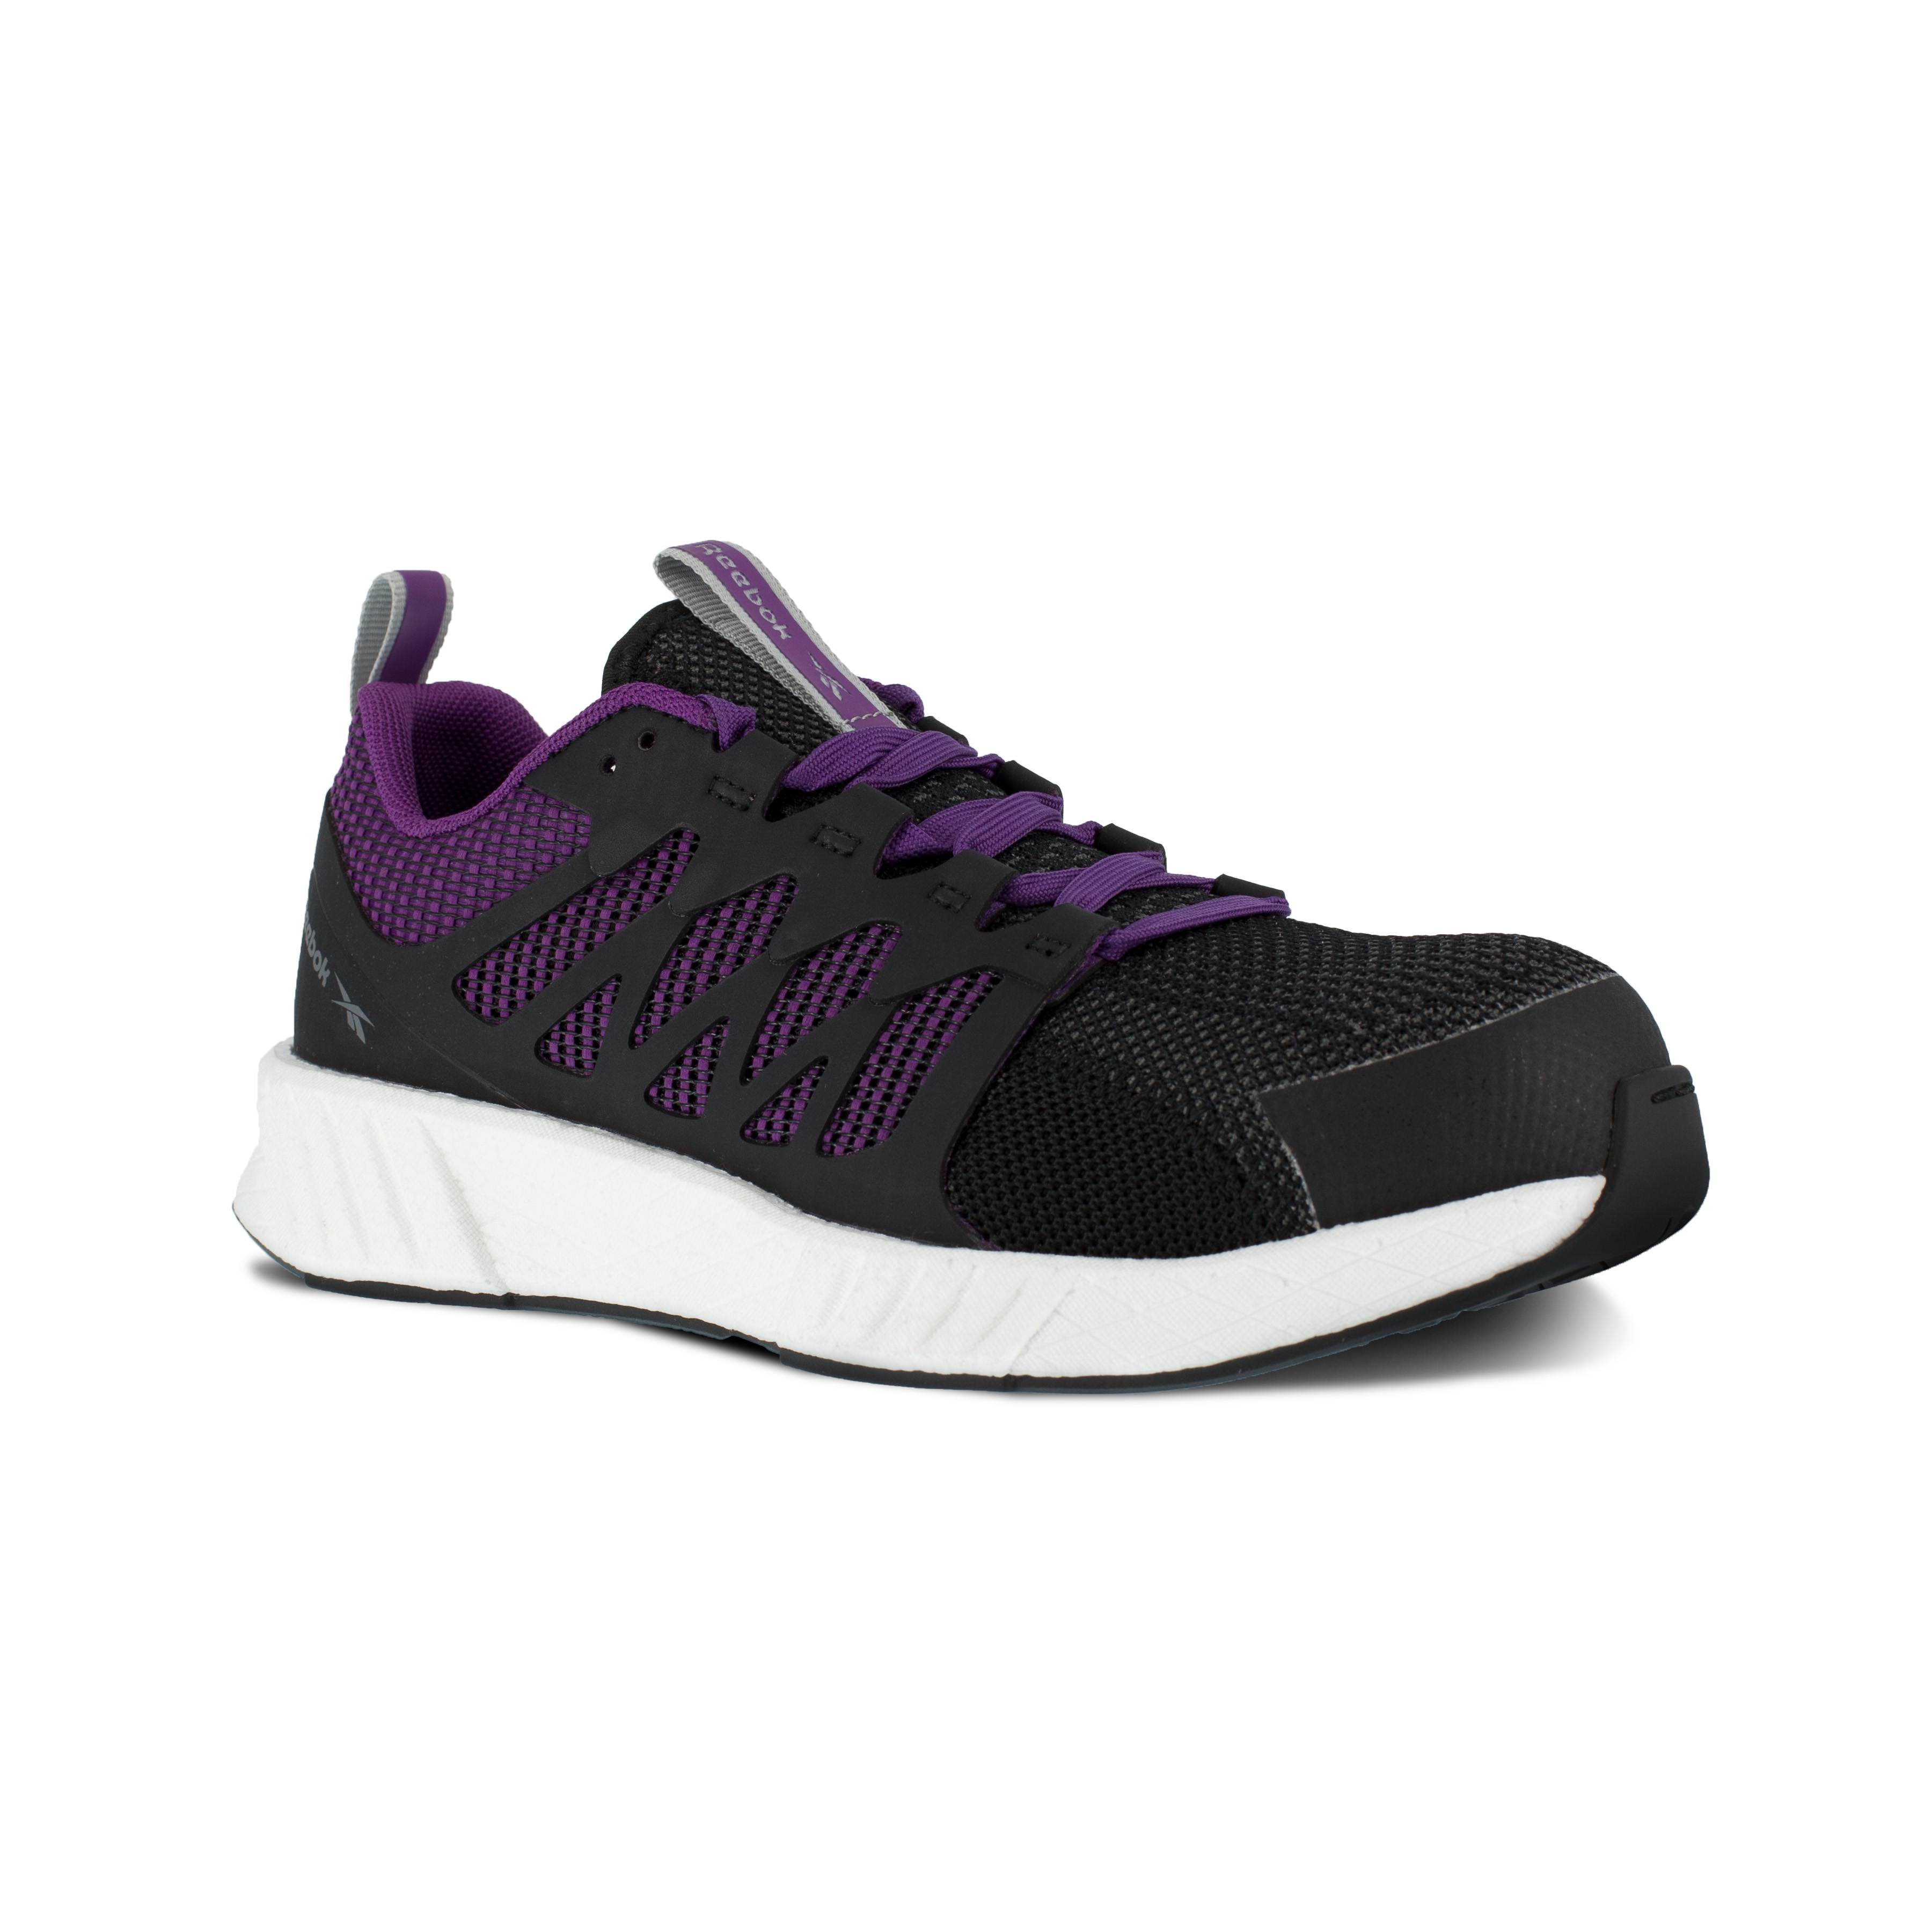 Reebok rb315 Floatride Energy womens EH electrical hazard protection composite safety toe sneaker